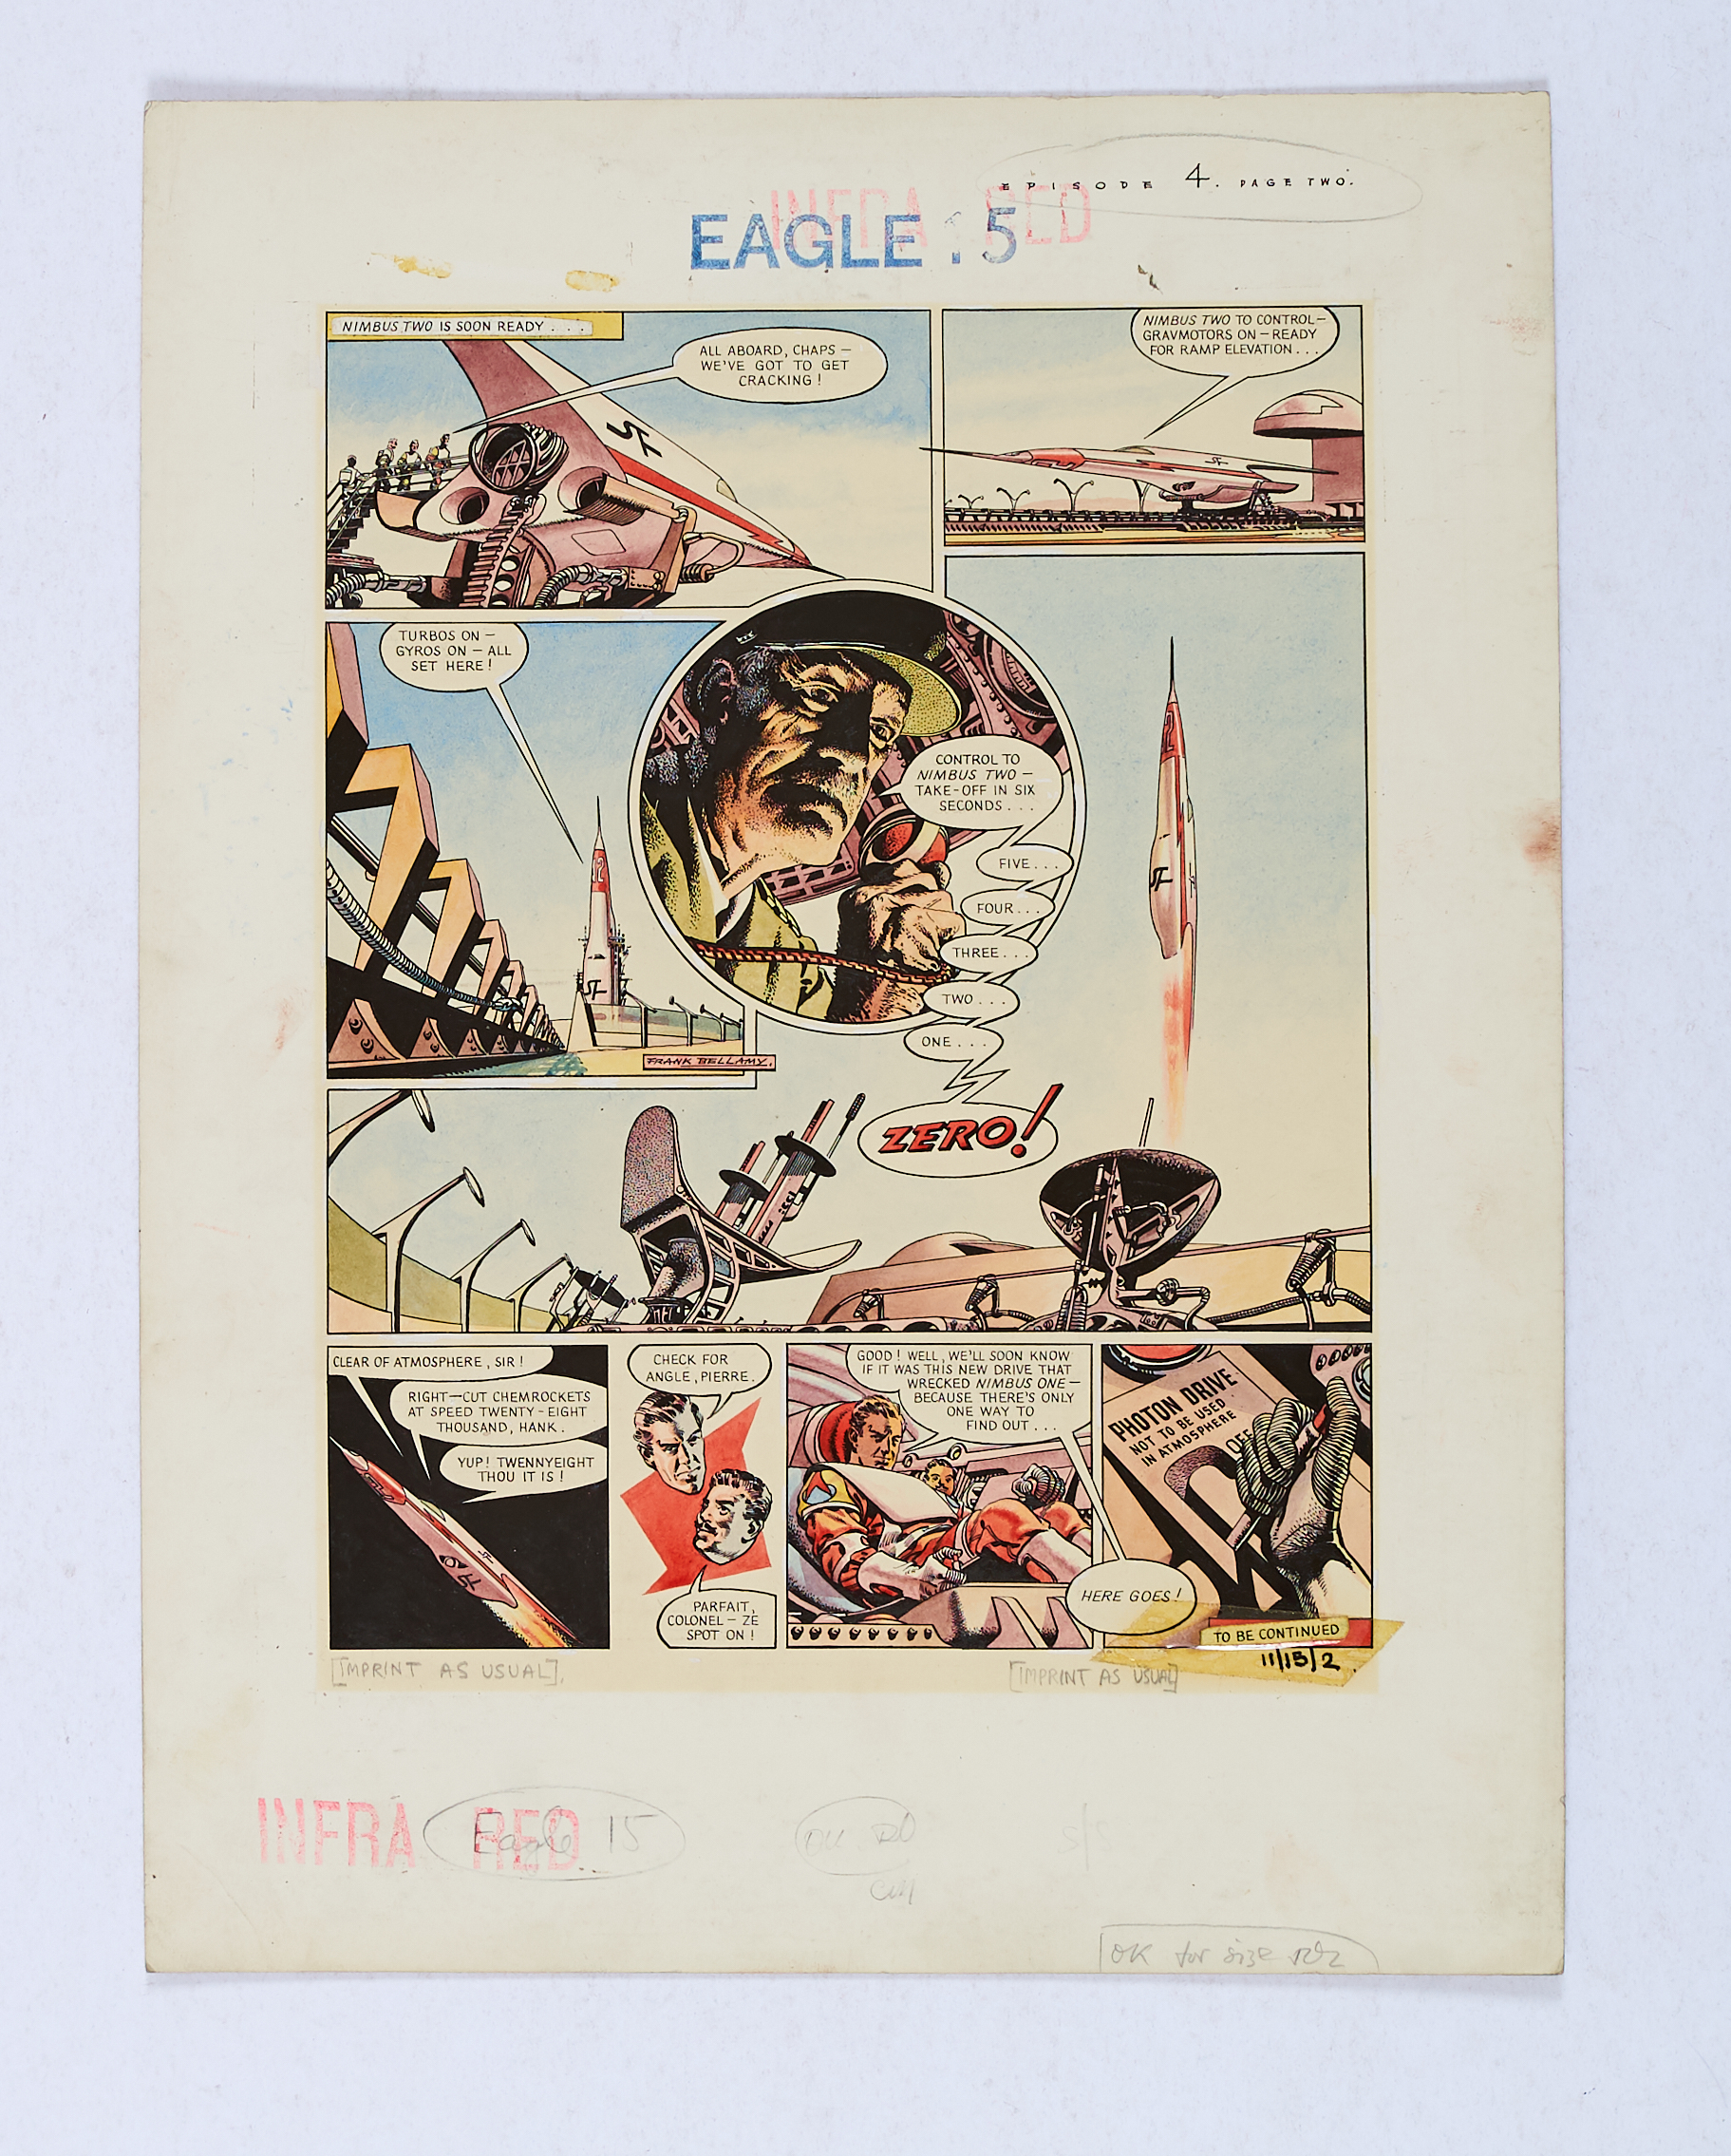 Lot 73 - Dan Dare original artwork painted and signed by Frank Bellamy for The Eagle Vol. 11, No 15 page 2 (9